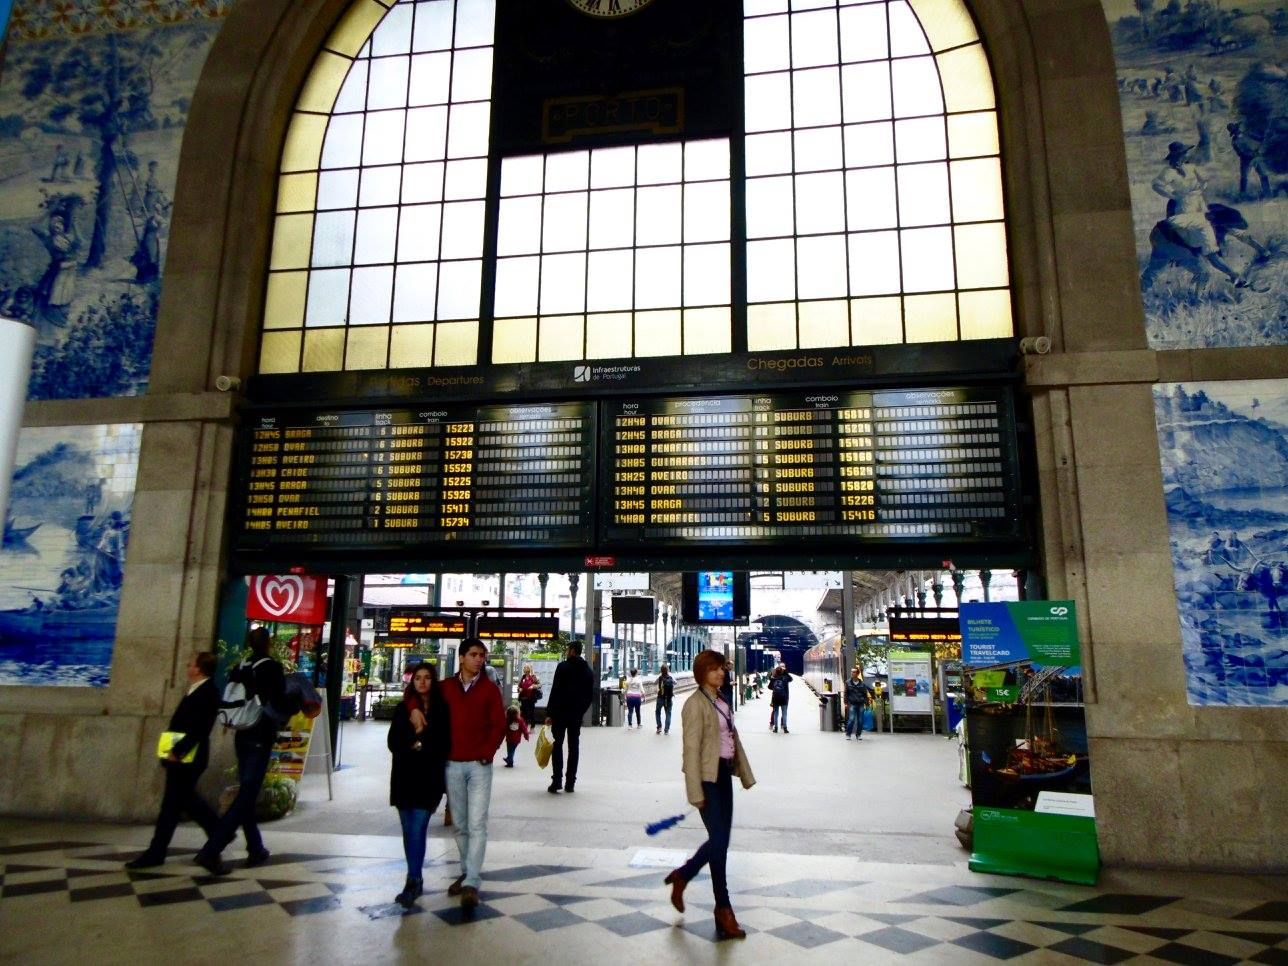 The Sao Bento train station. in Porto is possibly one of the most beautiful train stations in the World.